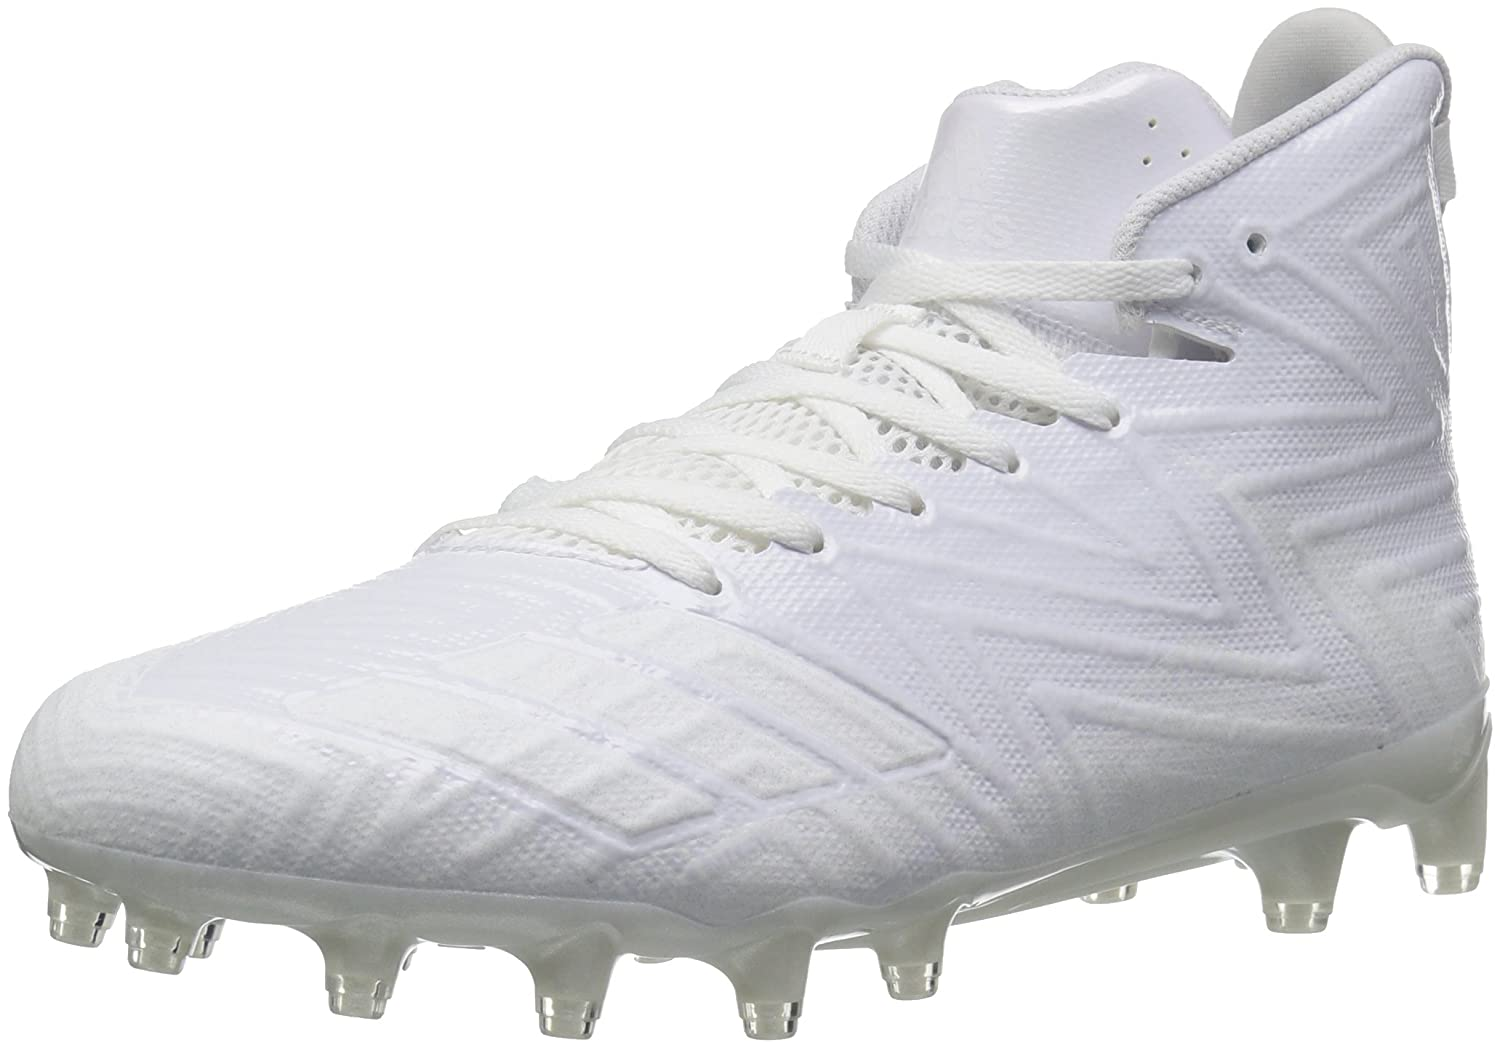 reputable site e14d8 88beb adidas Performance Men's Freak X Carbon Mid Football Shoe